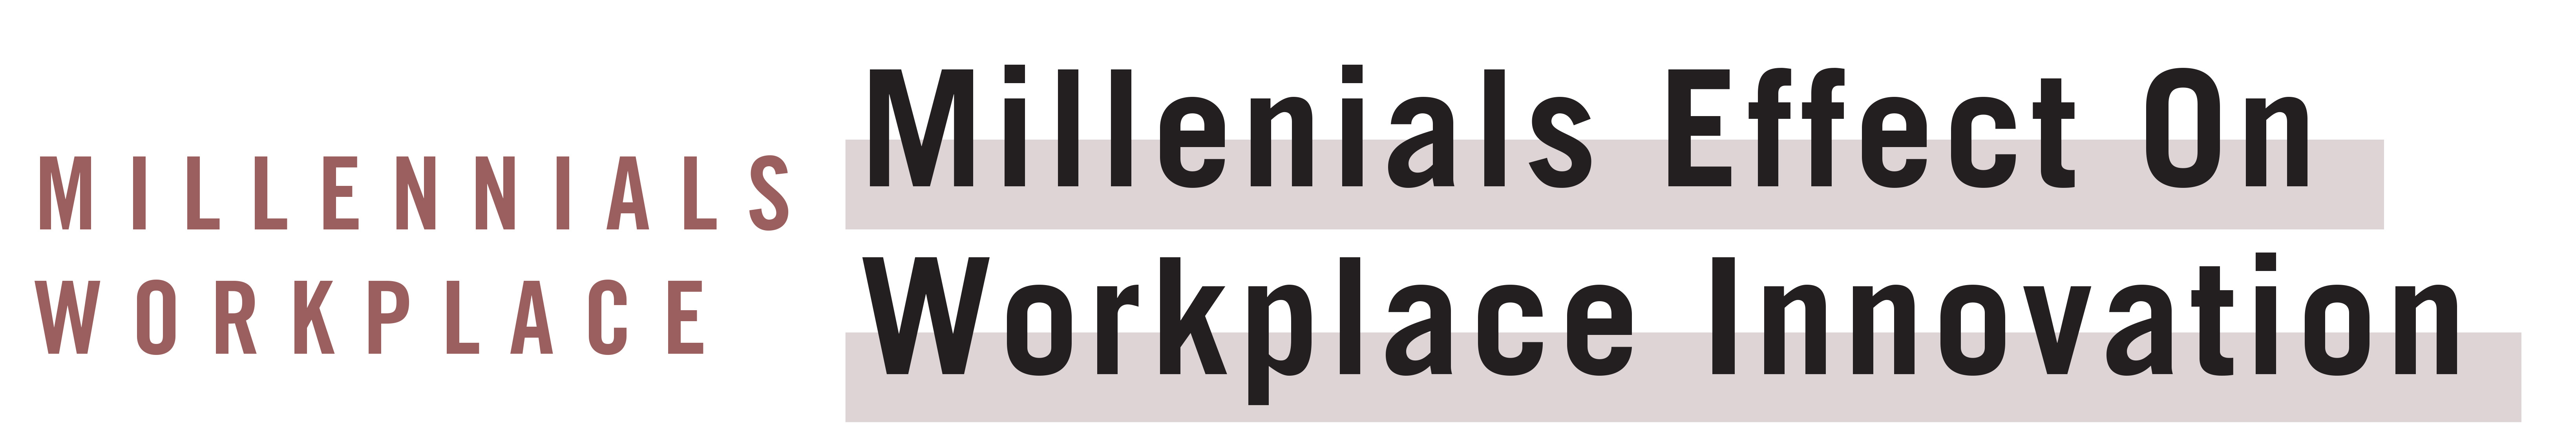 Millennials Impacting Workplace